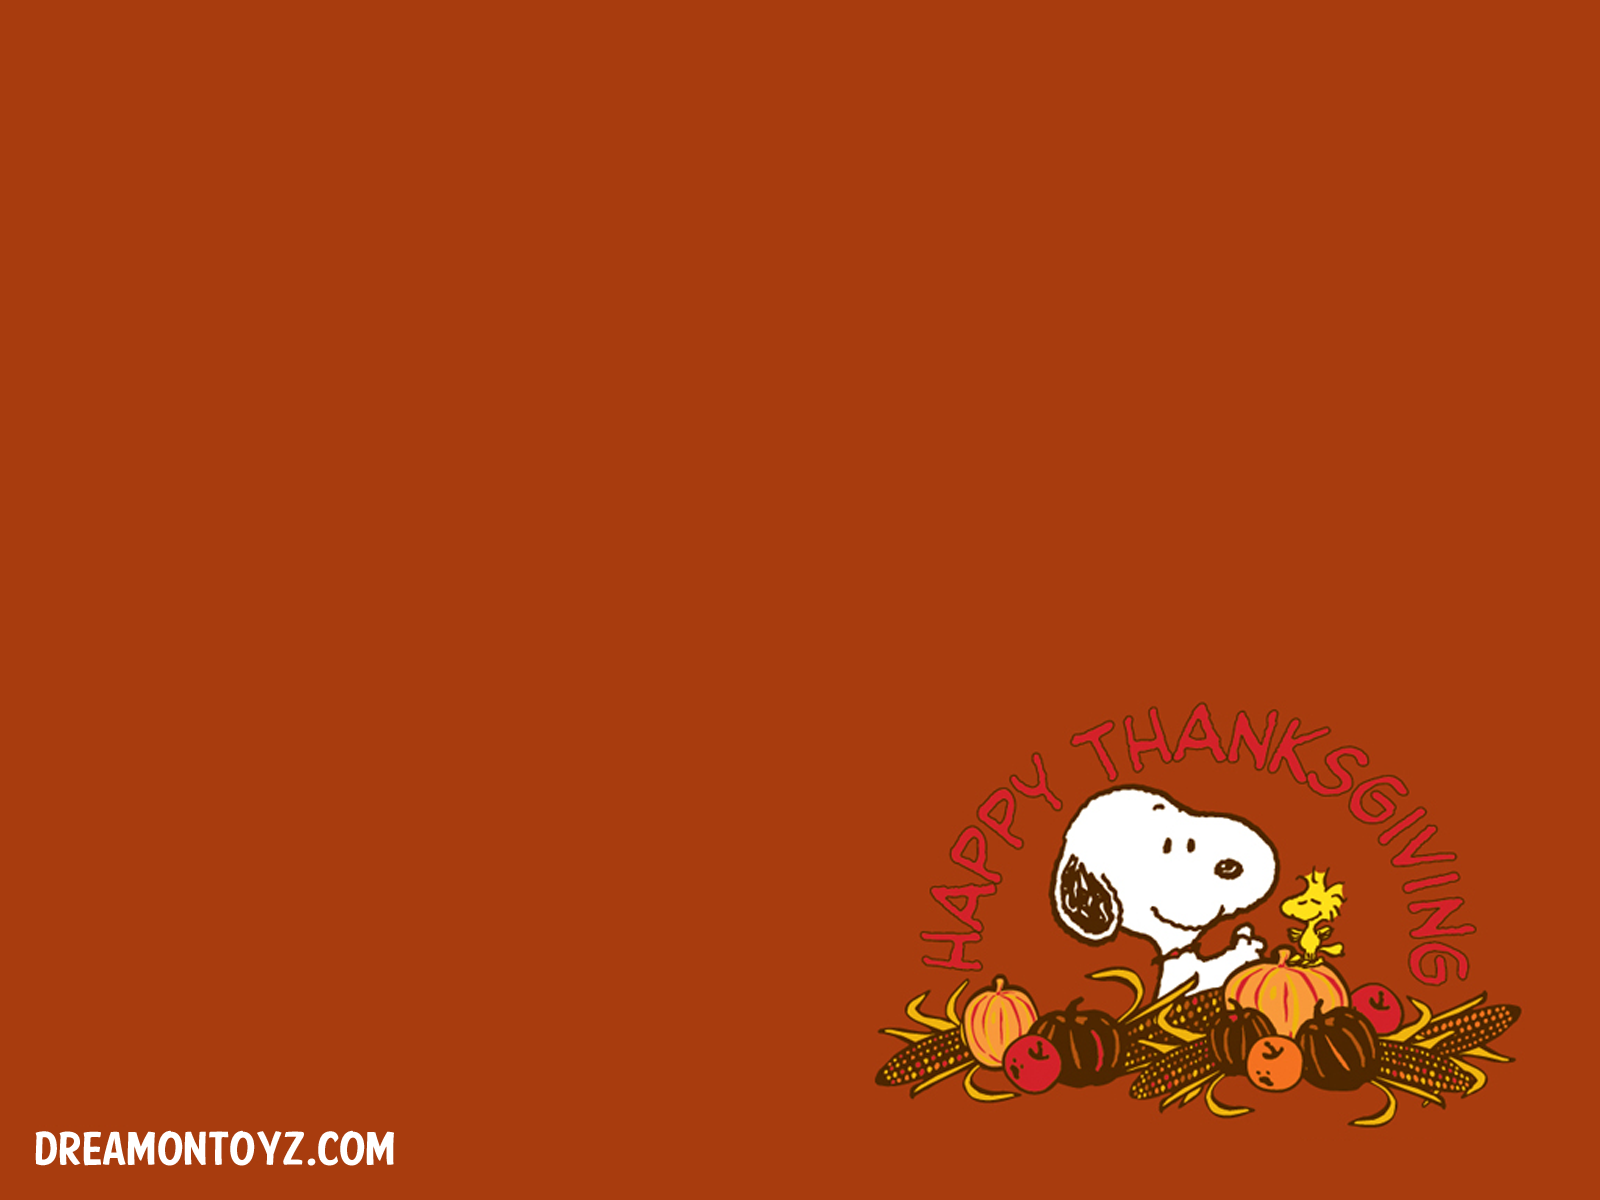 Free Cartoon Graphics Pics Gifs Photographs Peanuts Snoopy Thanksgiving Wallpapers Snoopy Wallpaper Disney Thanksgiving Thanksgiving Wallpaper